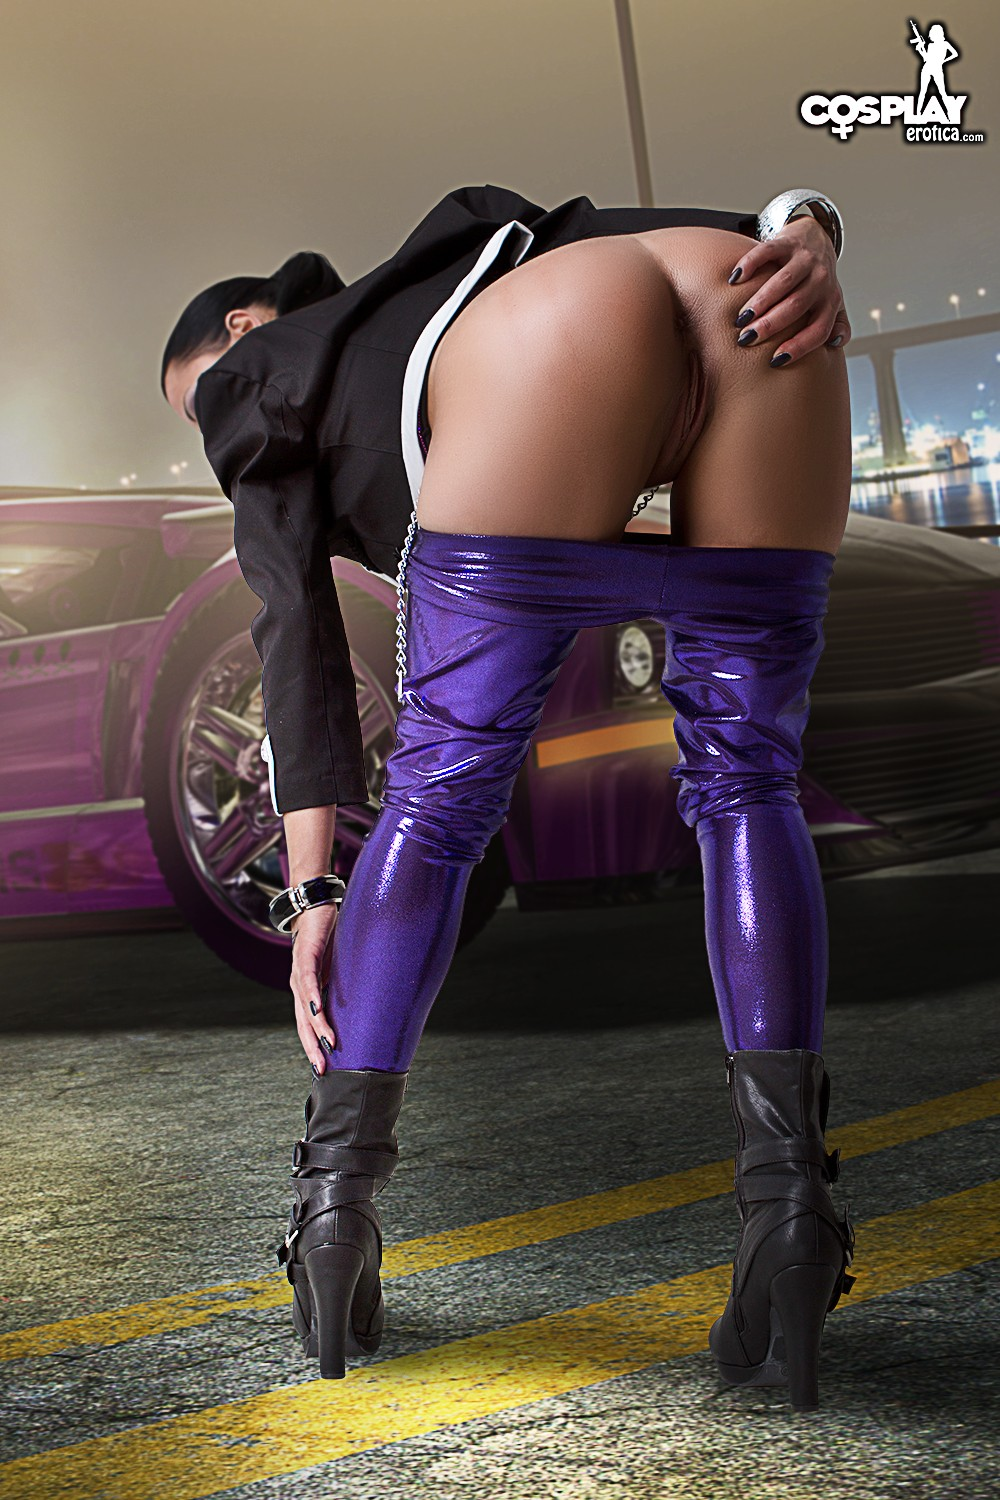 Nude shaundi sex saints row 4 fucking pictures